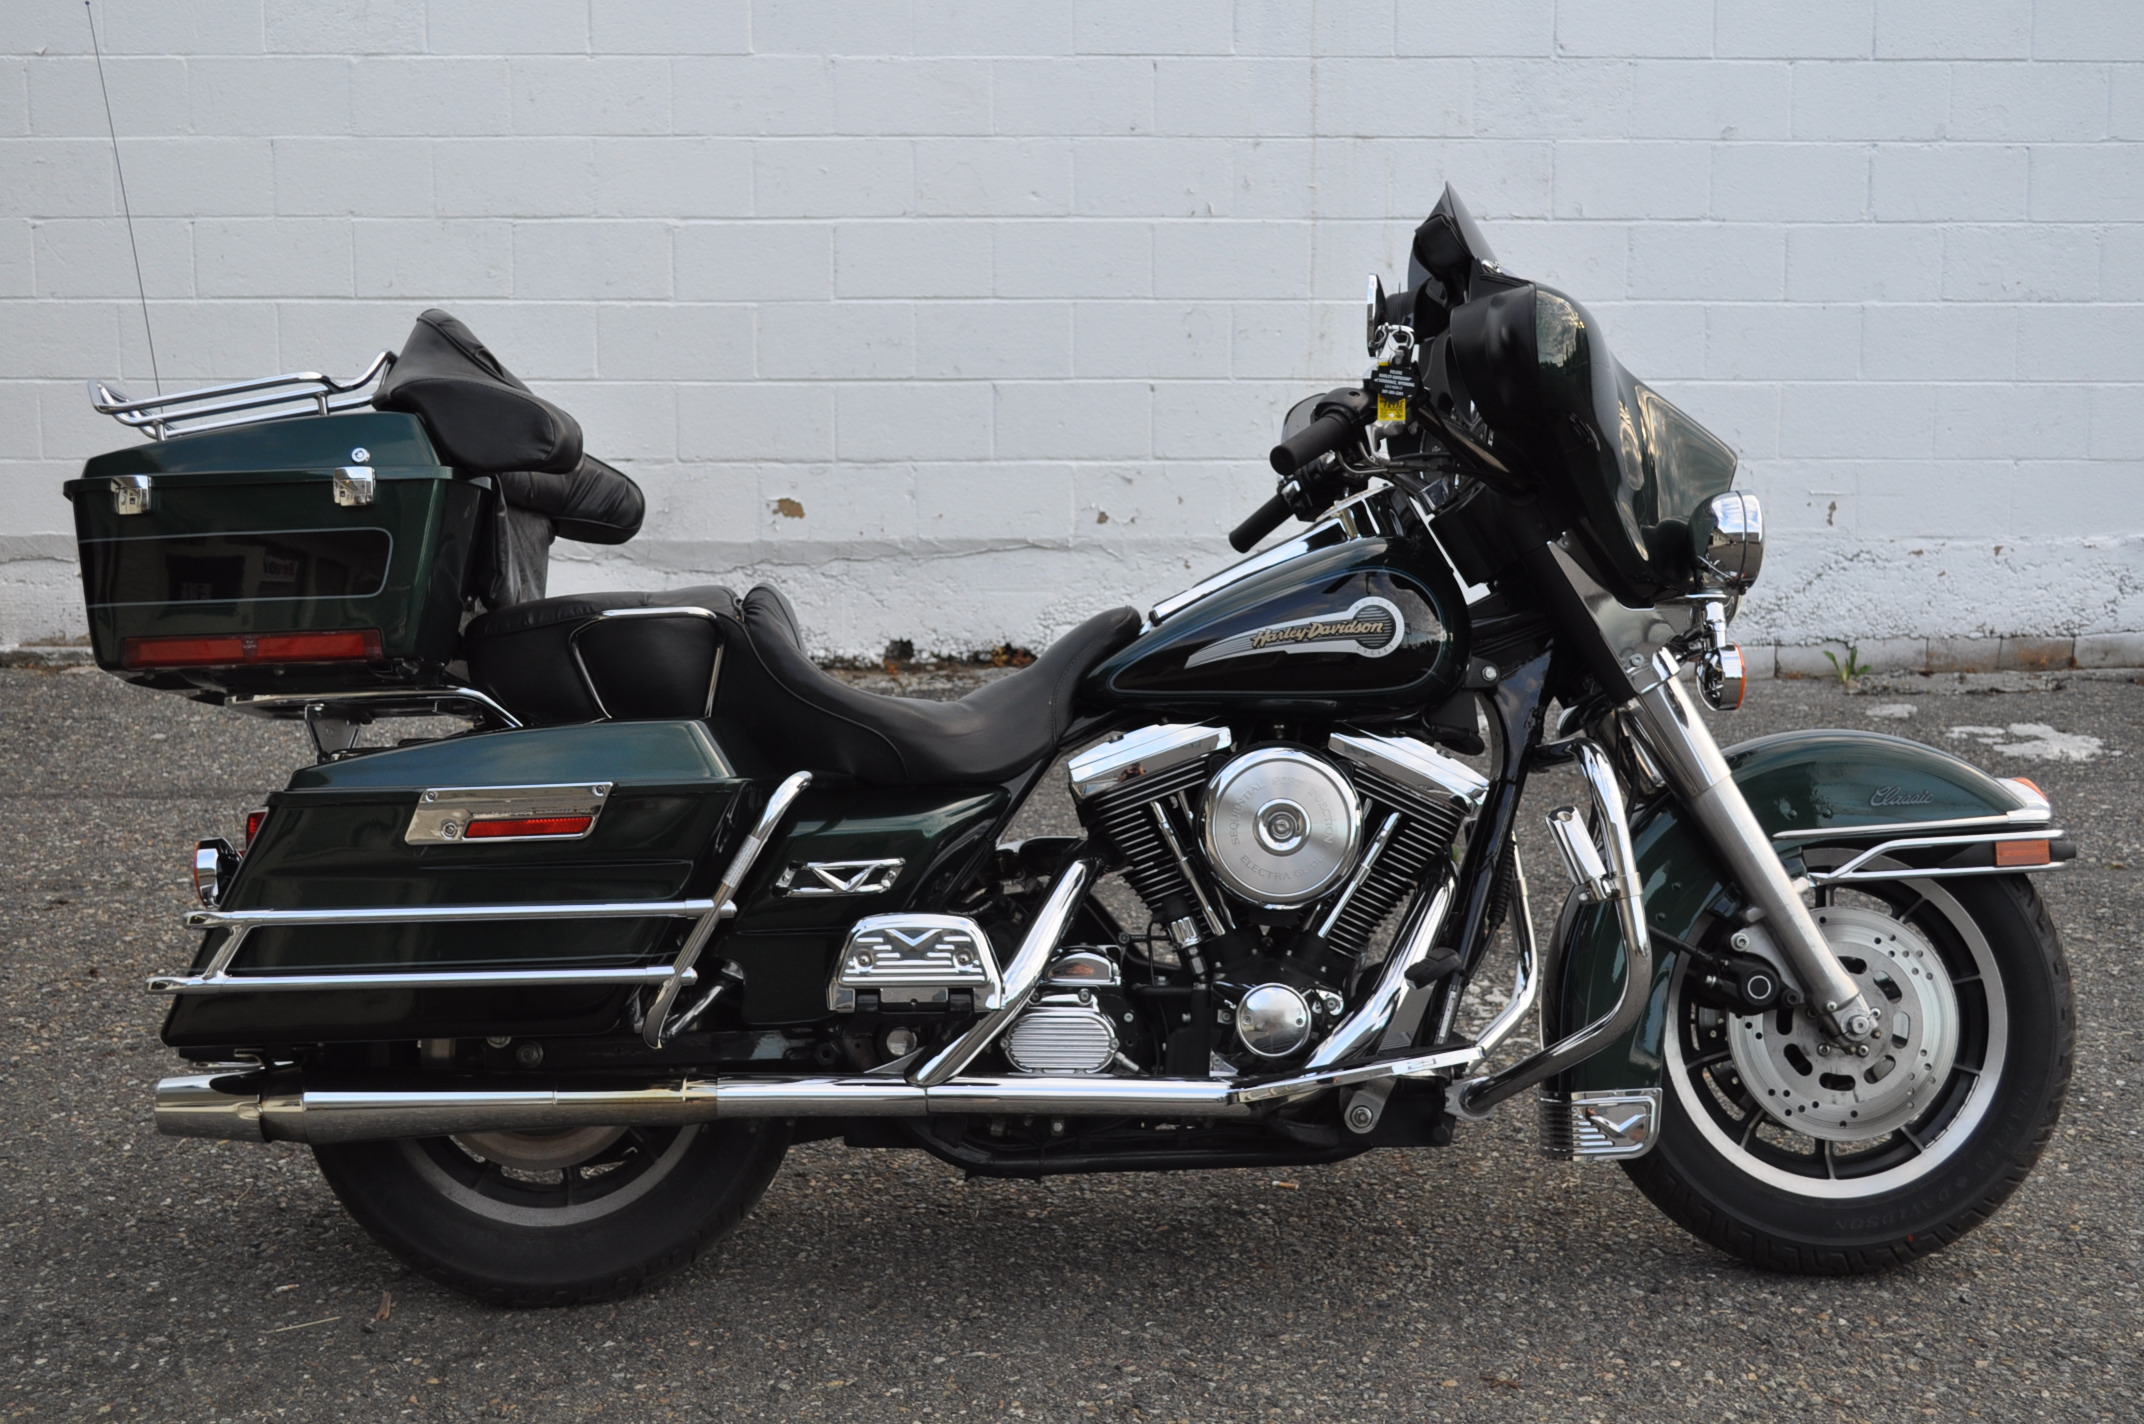 Harley-Davidson Electra Glide Classic 1997 #1